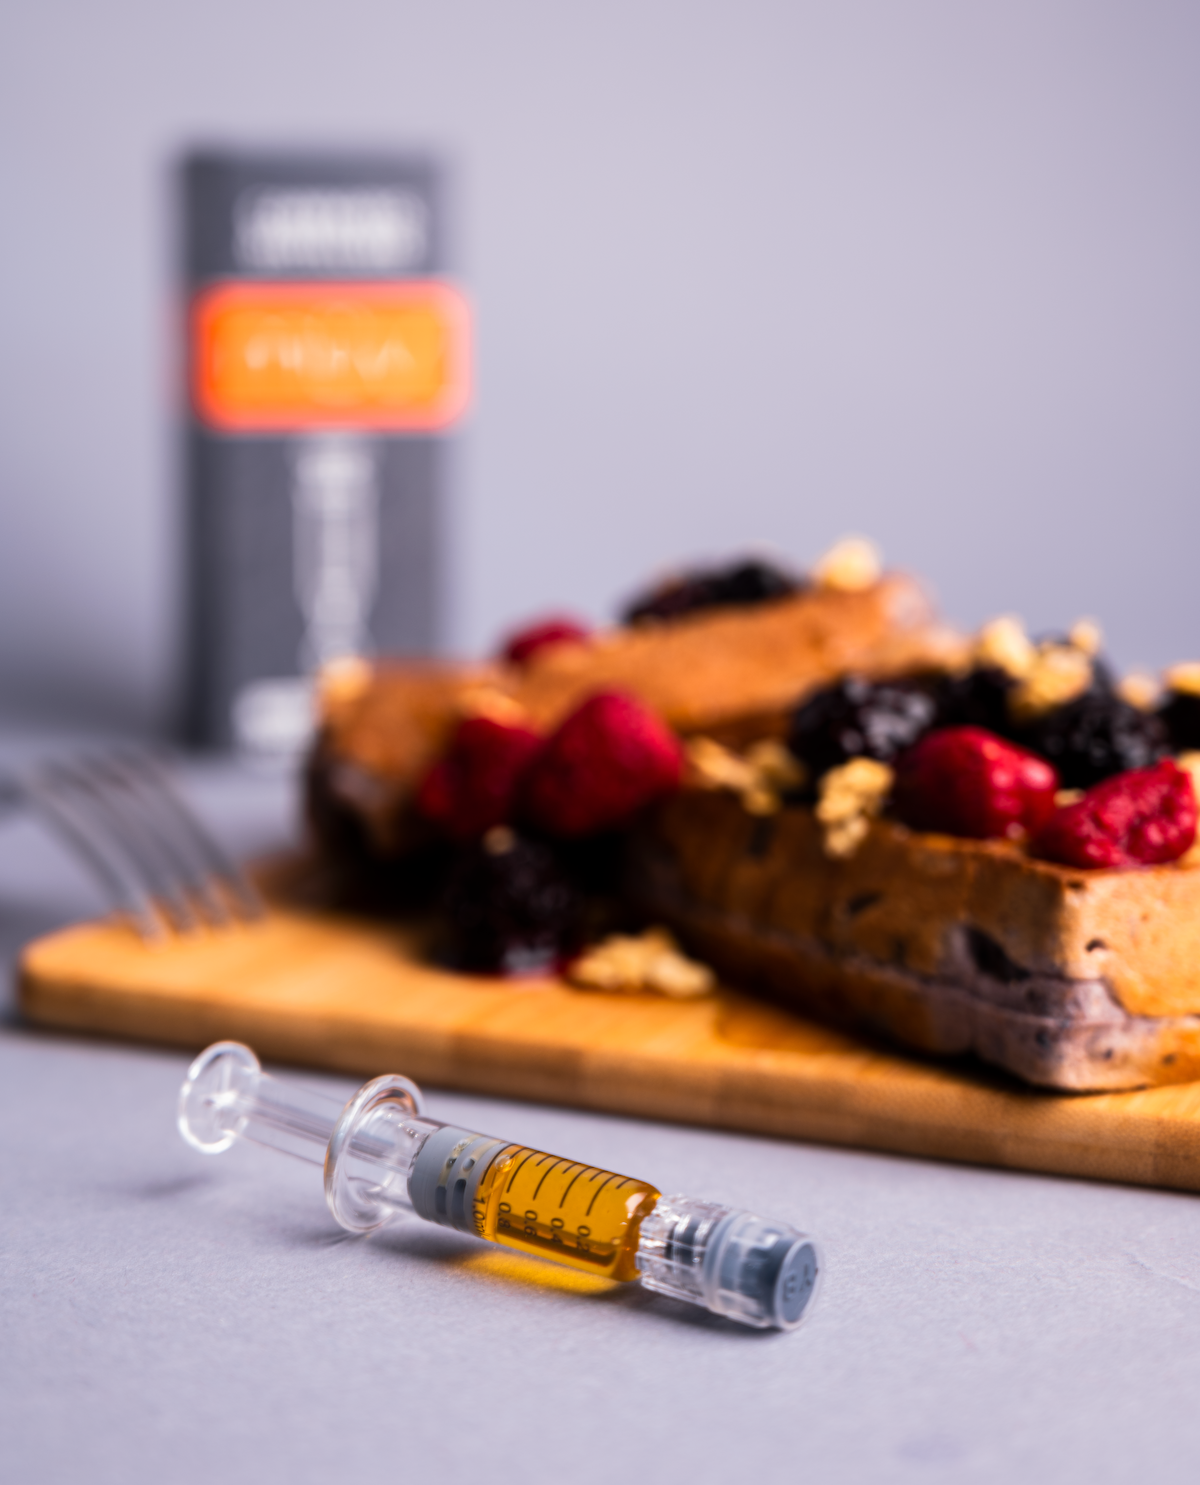 Ingestible Cannabis Oils